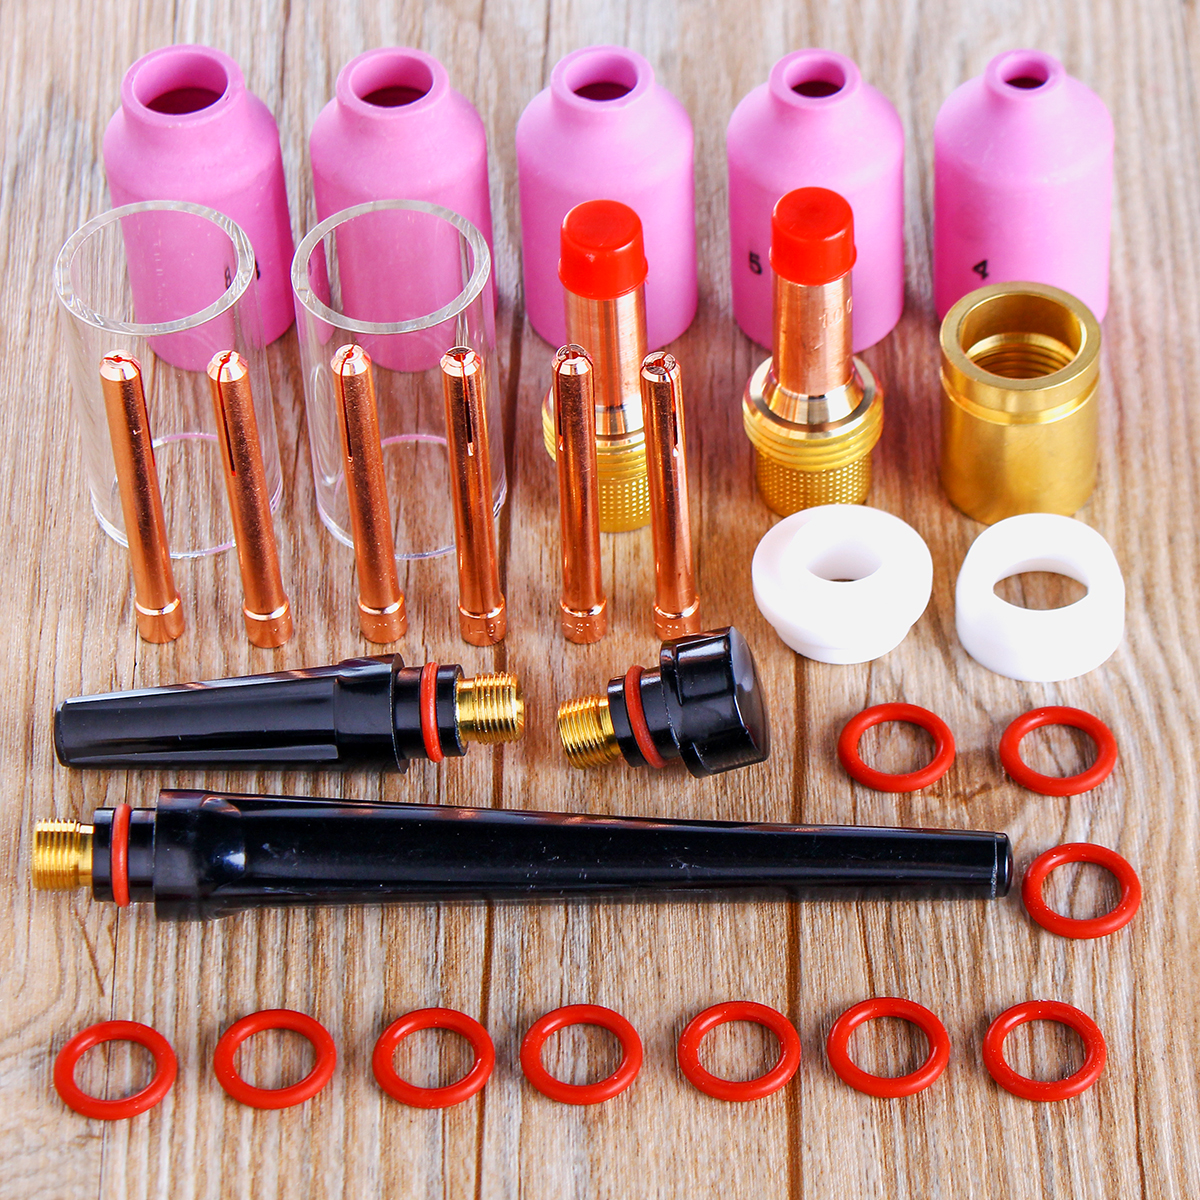 31Pcs TIG Welding Torch Stubby Gas Lens Glass Pyrex Cup Collect Body Kit for WP-17/18/26 Series Welder Tool Accessory